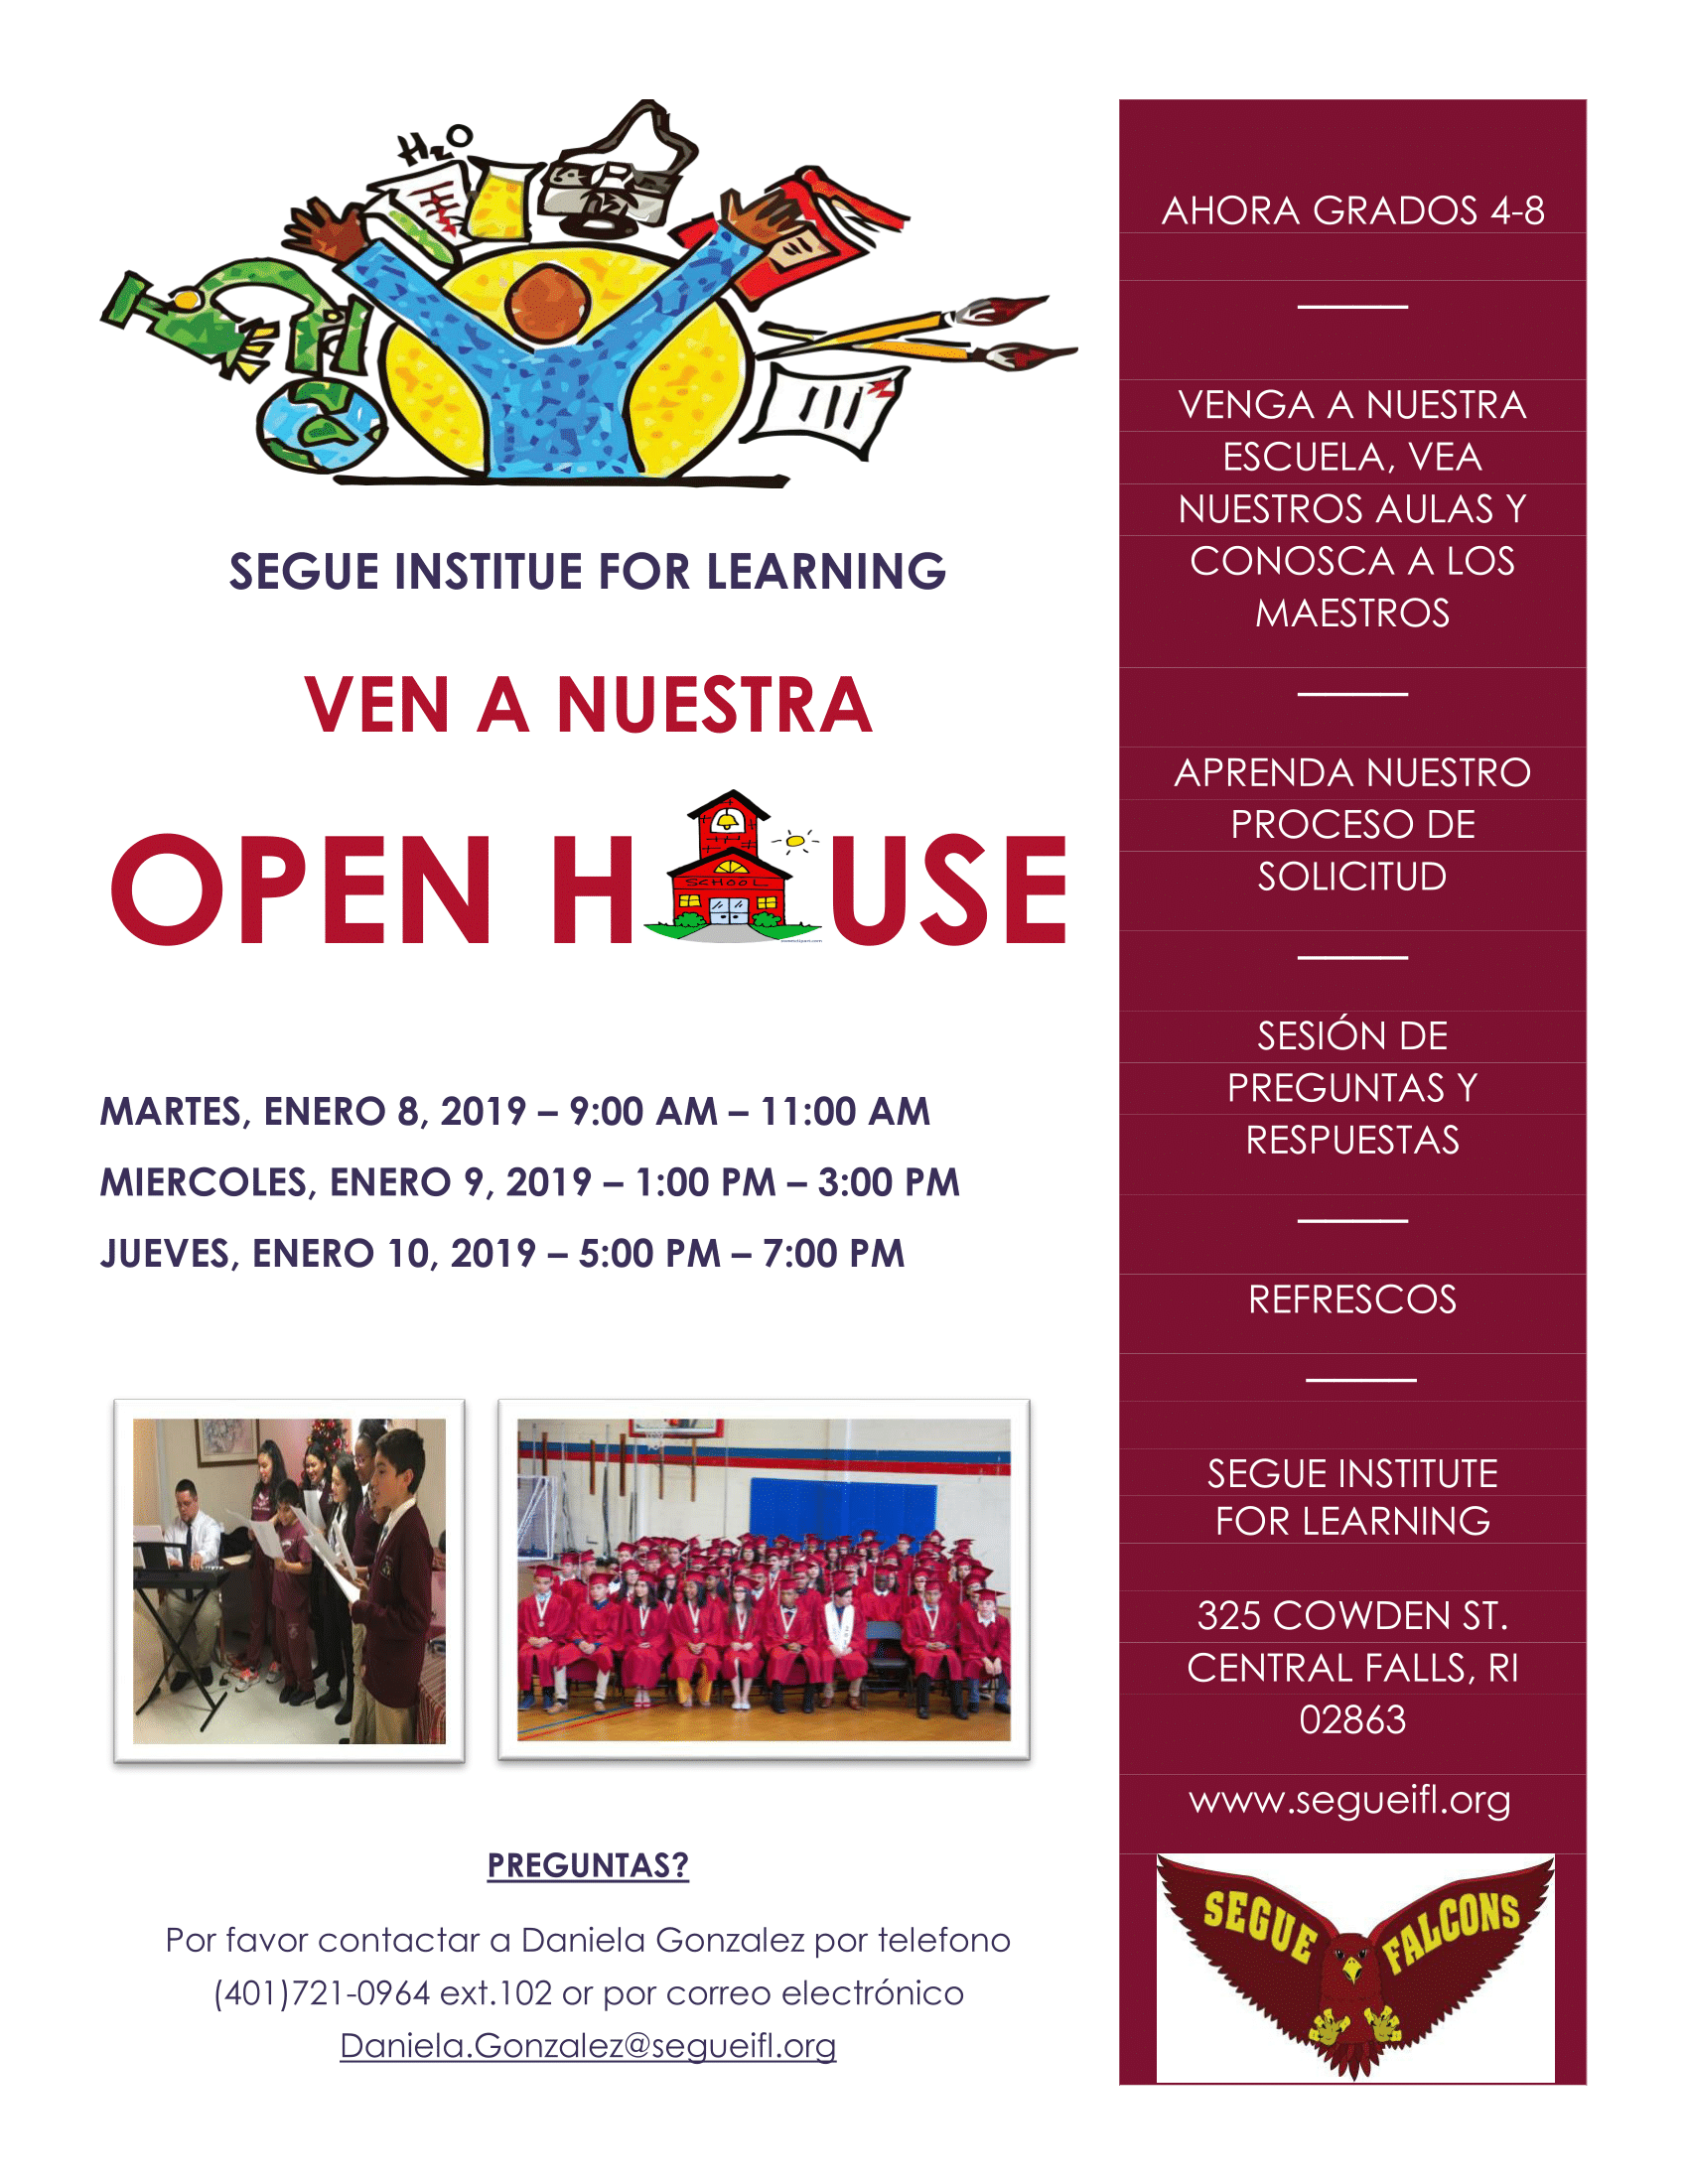 OPEN HOUSE FLYER 2019-2